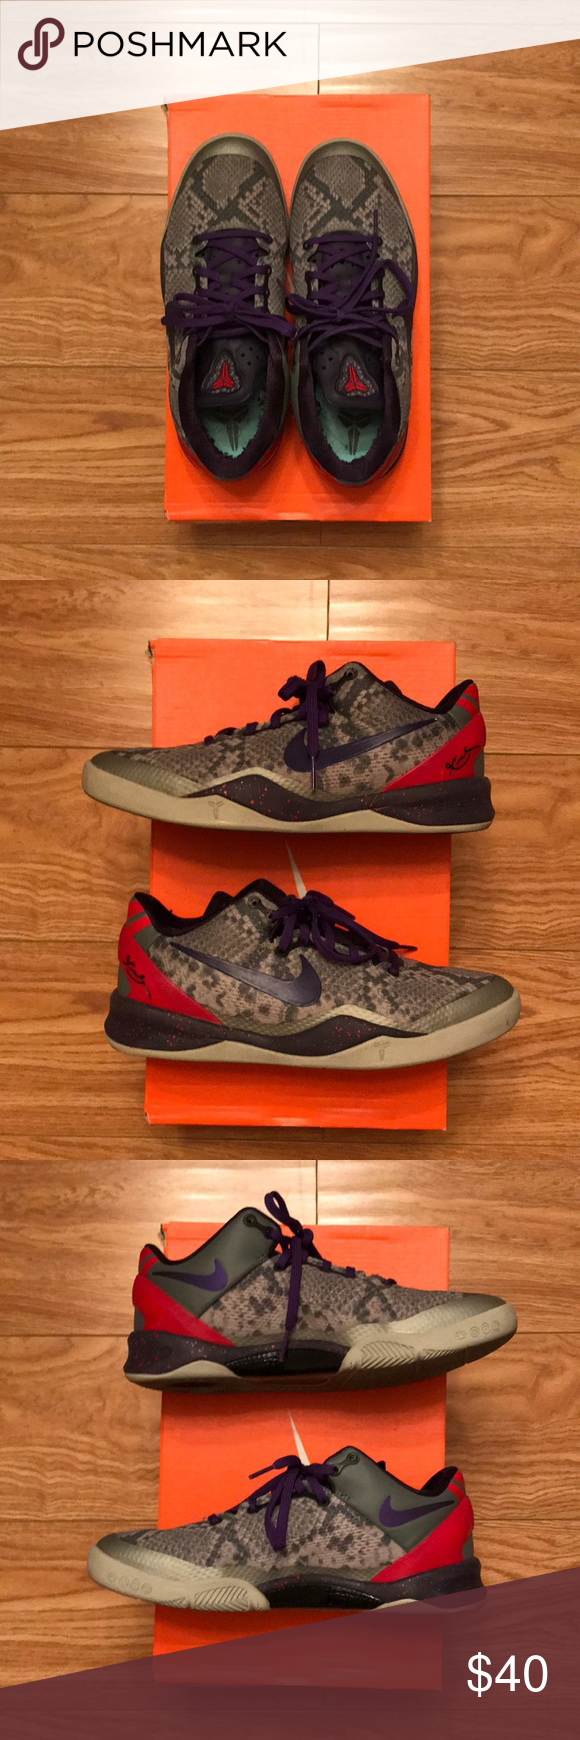 49a281215348 Kobe 8 Good condition Kobe 8 youth. Size is 5 youth. No rips or tears. One  of the best Kobe basketball shoes. Nike Shoes Sneakers